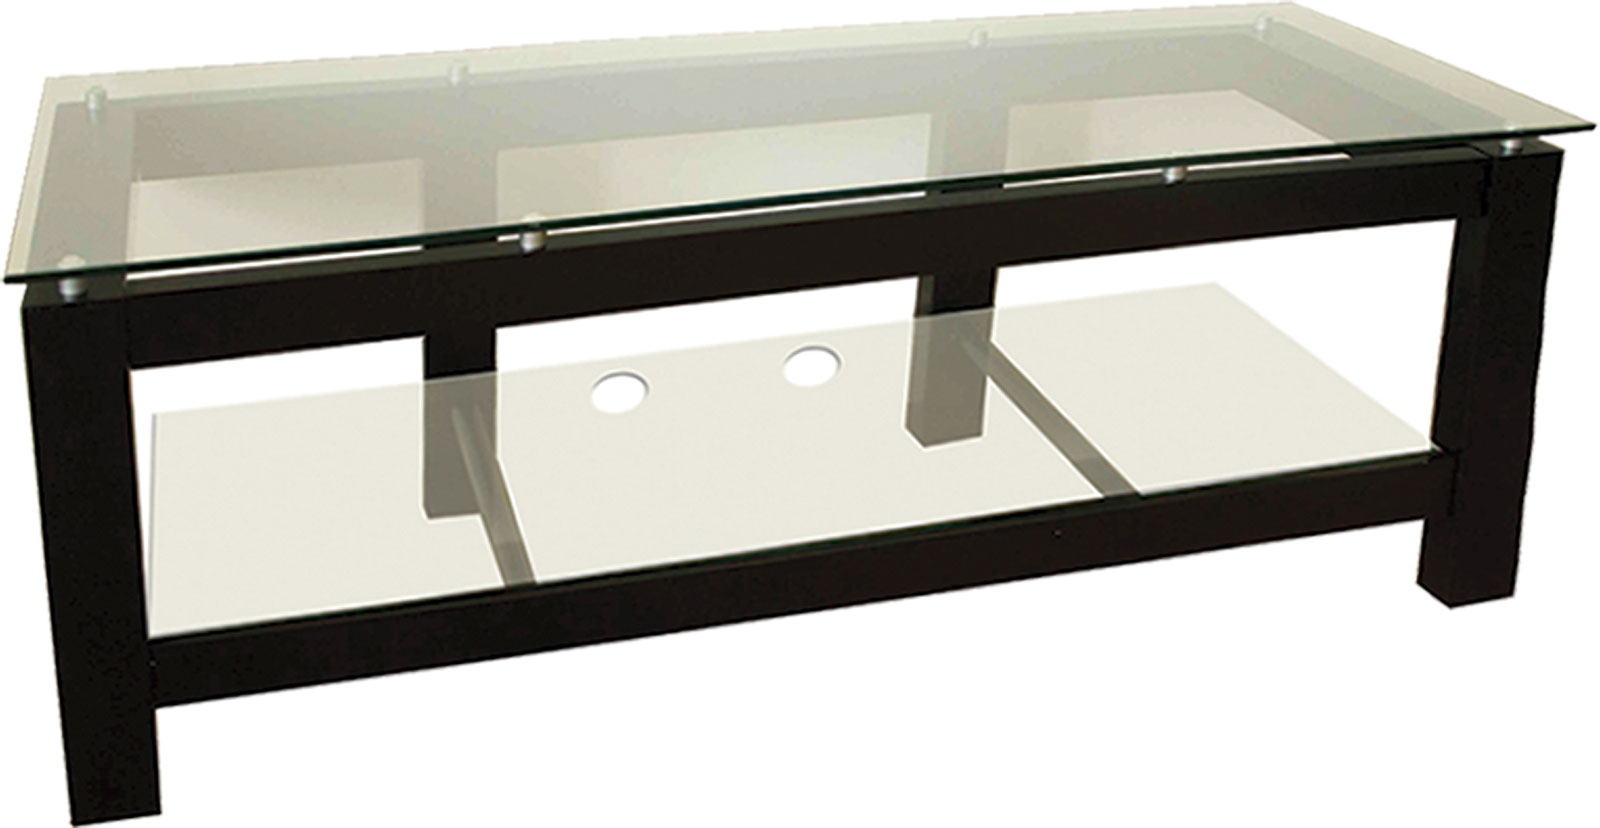 64 Inch Low Profile Flat Screen Black Tv Stand With Glass